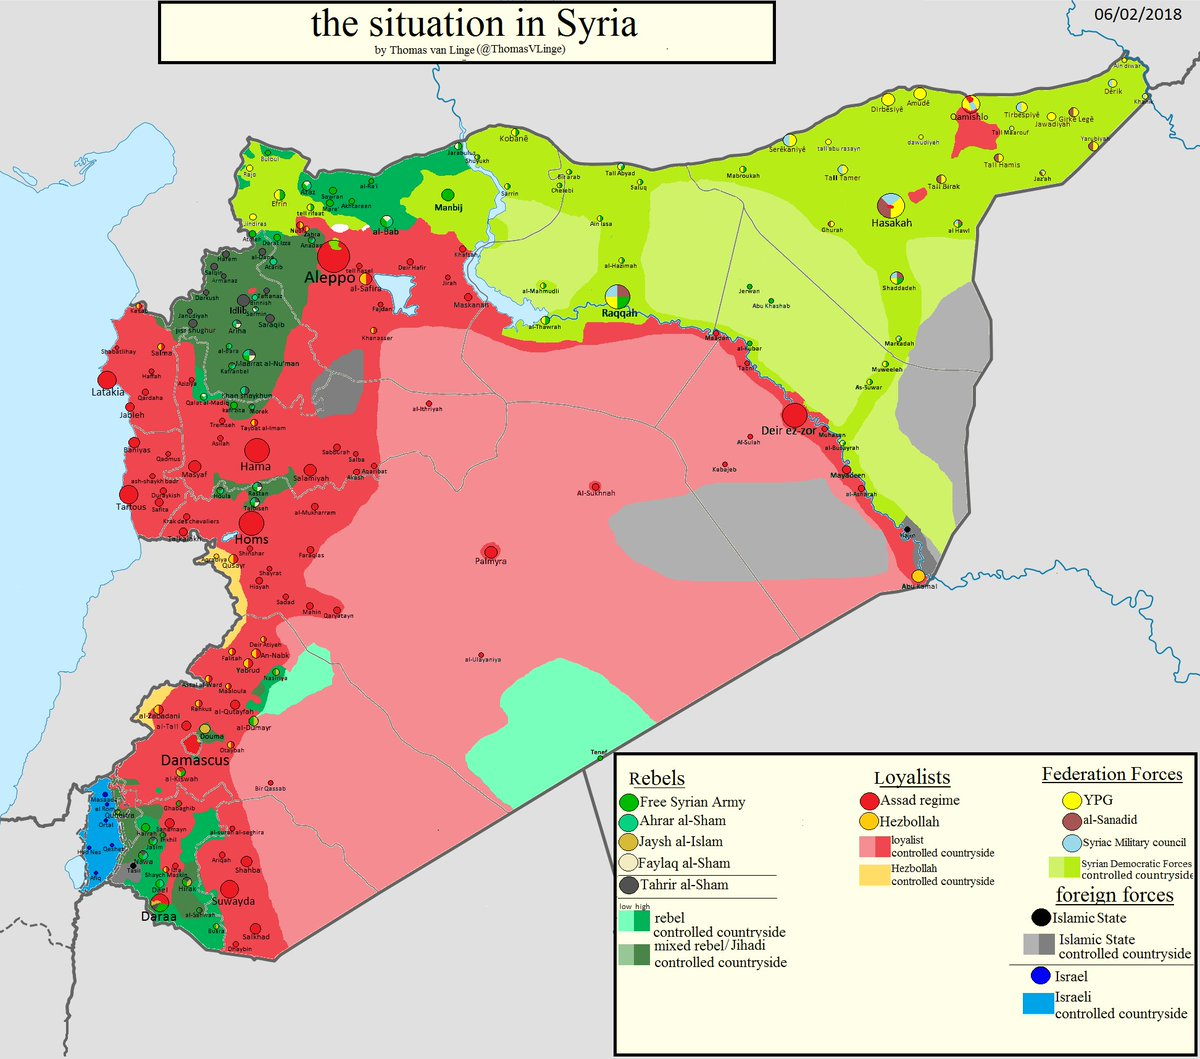 Thomas van Linge on Twitter Syria MAP UPDATE the situation in